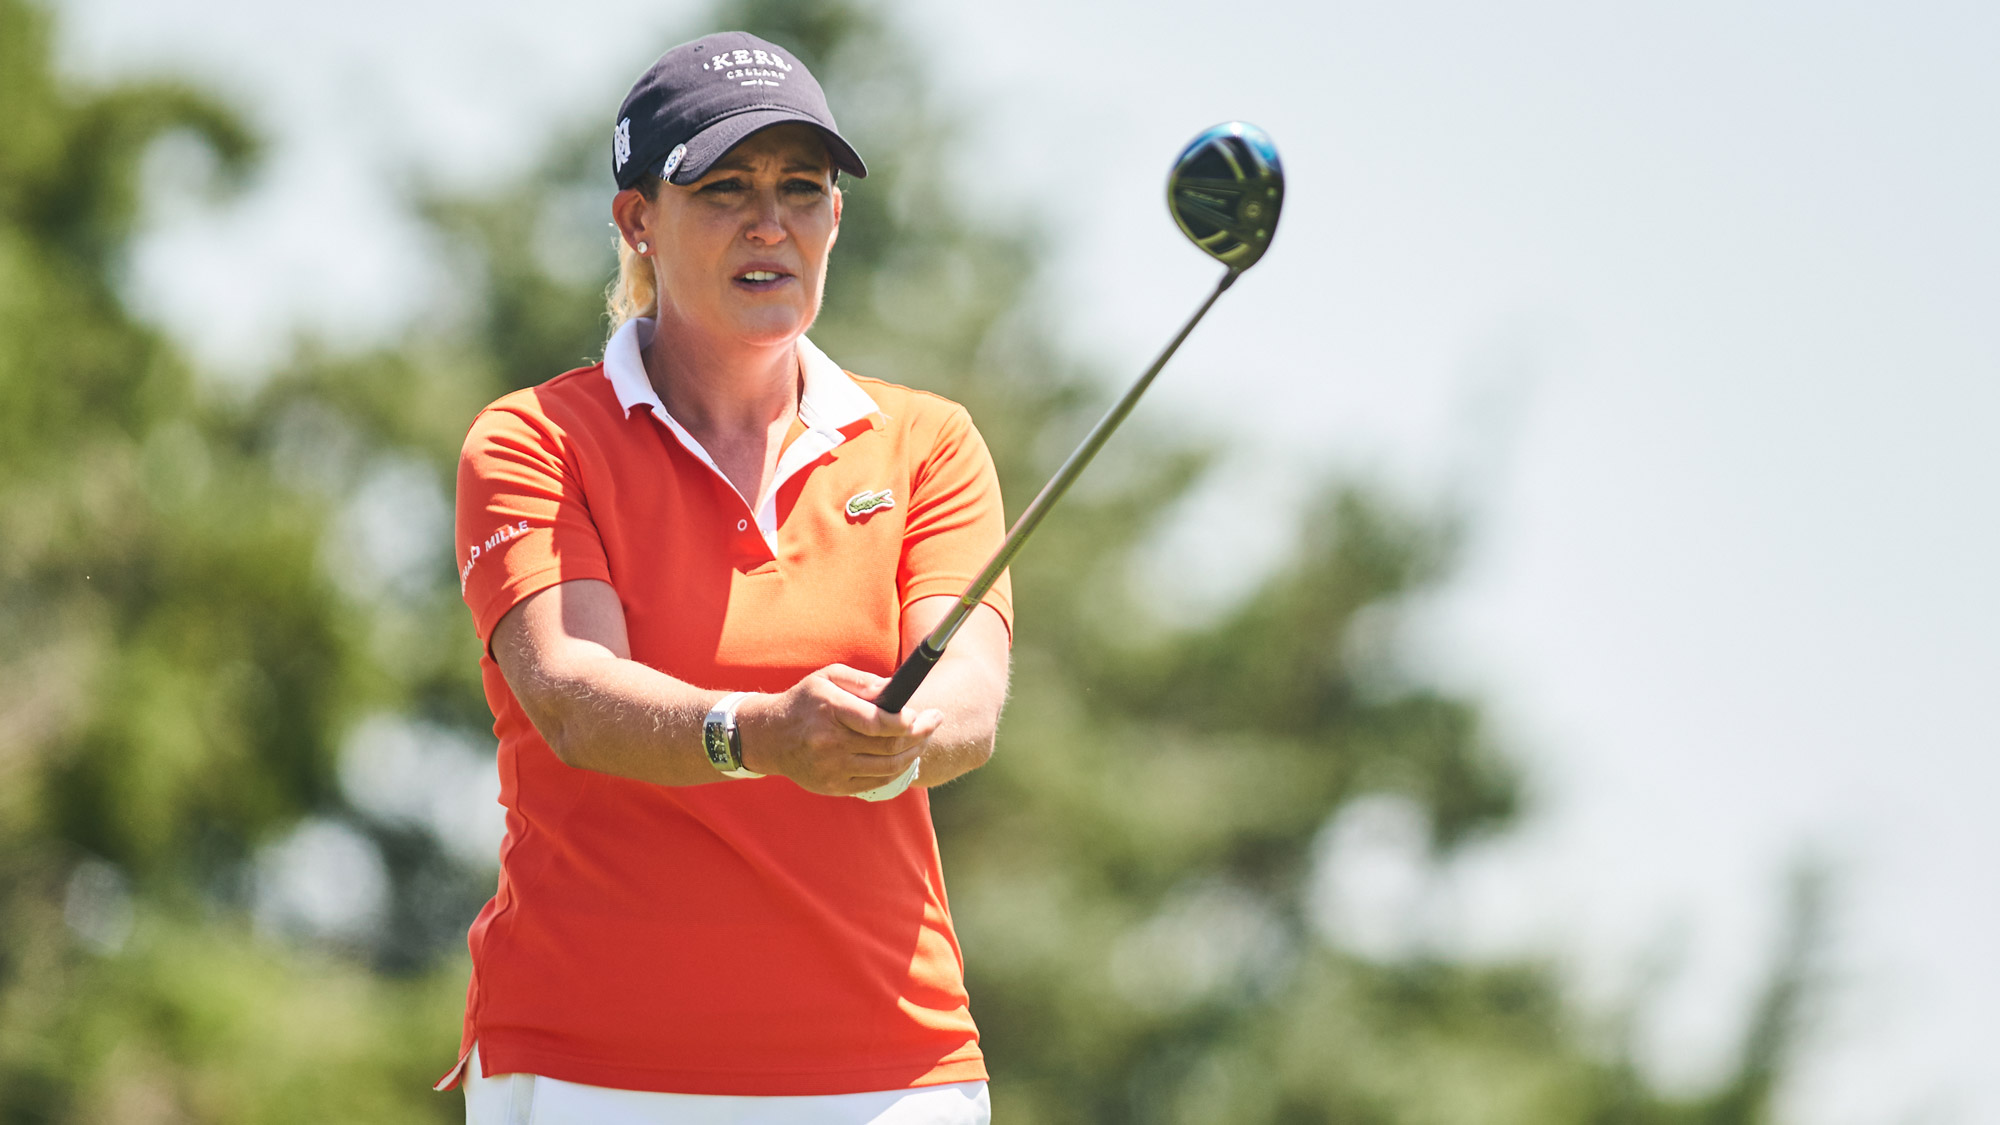 Cristie Kerr Eyes Her Tee Shot on Saturday at VOA LPGA Texas Classic